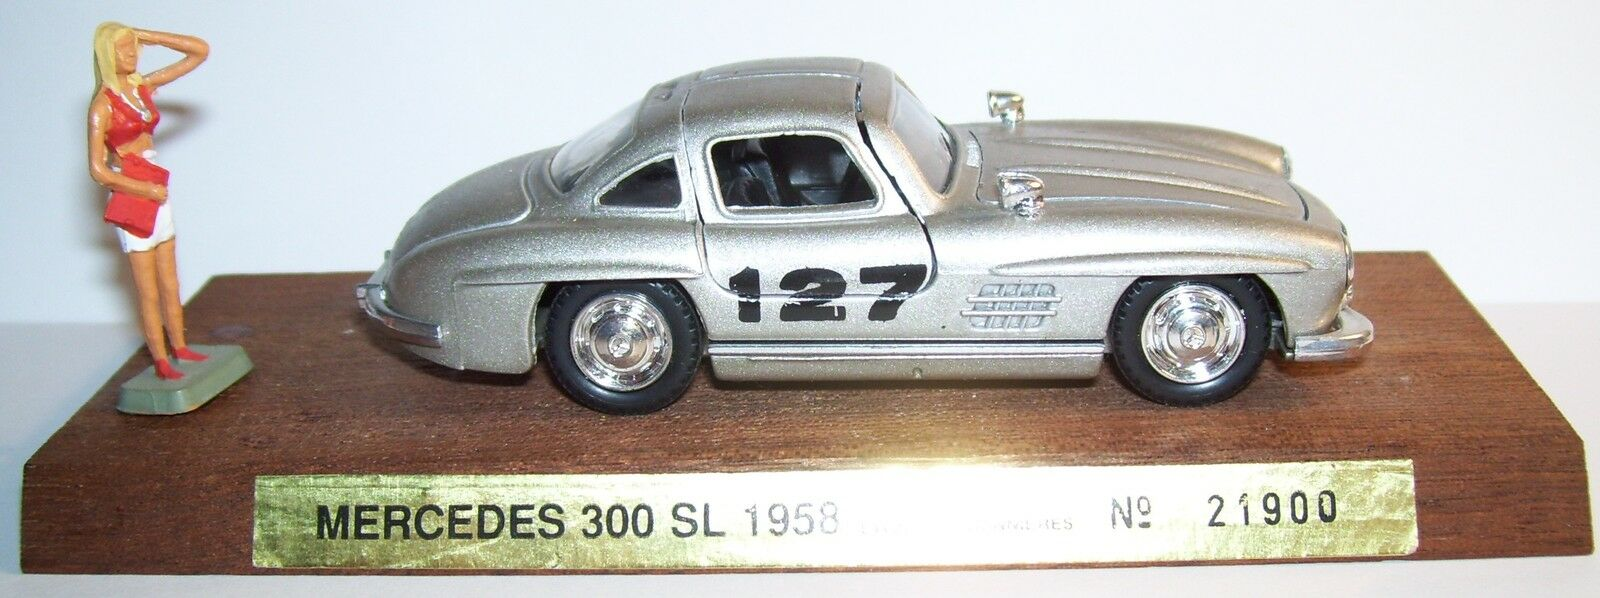 RARE CEC on BASE SOLIDO MERCEDES 300 SL 1958 RALLY LYON CHARBONNIERES REF21900